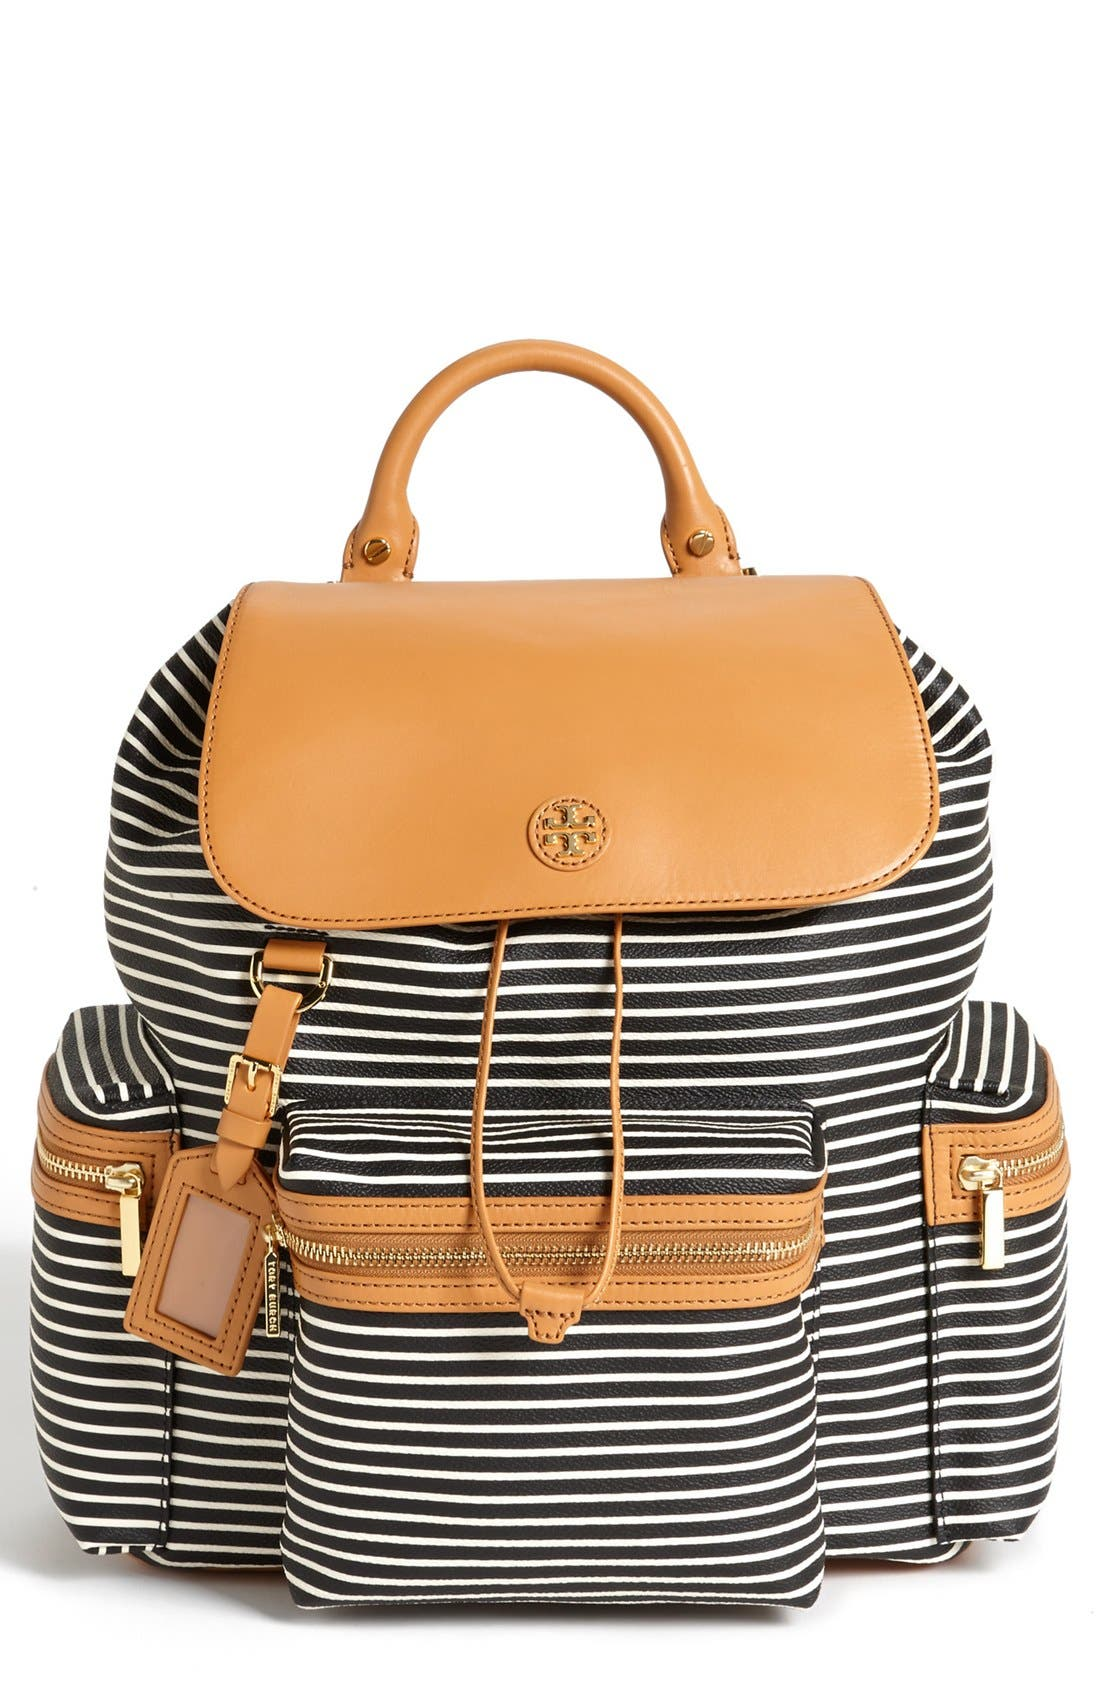 Main Image - Tory Burch 'Viva' Canvas & Leather Backpack